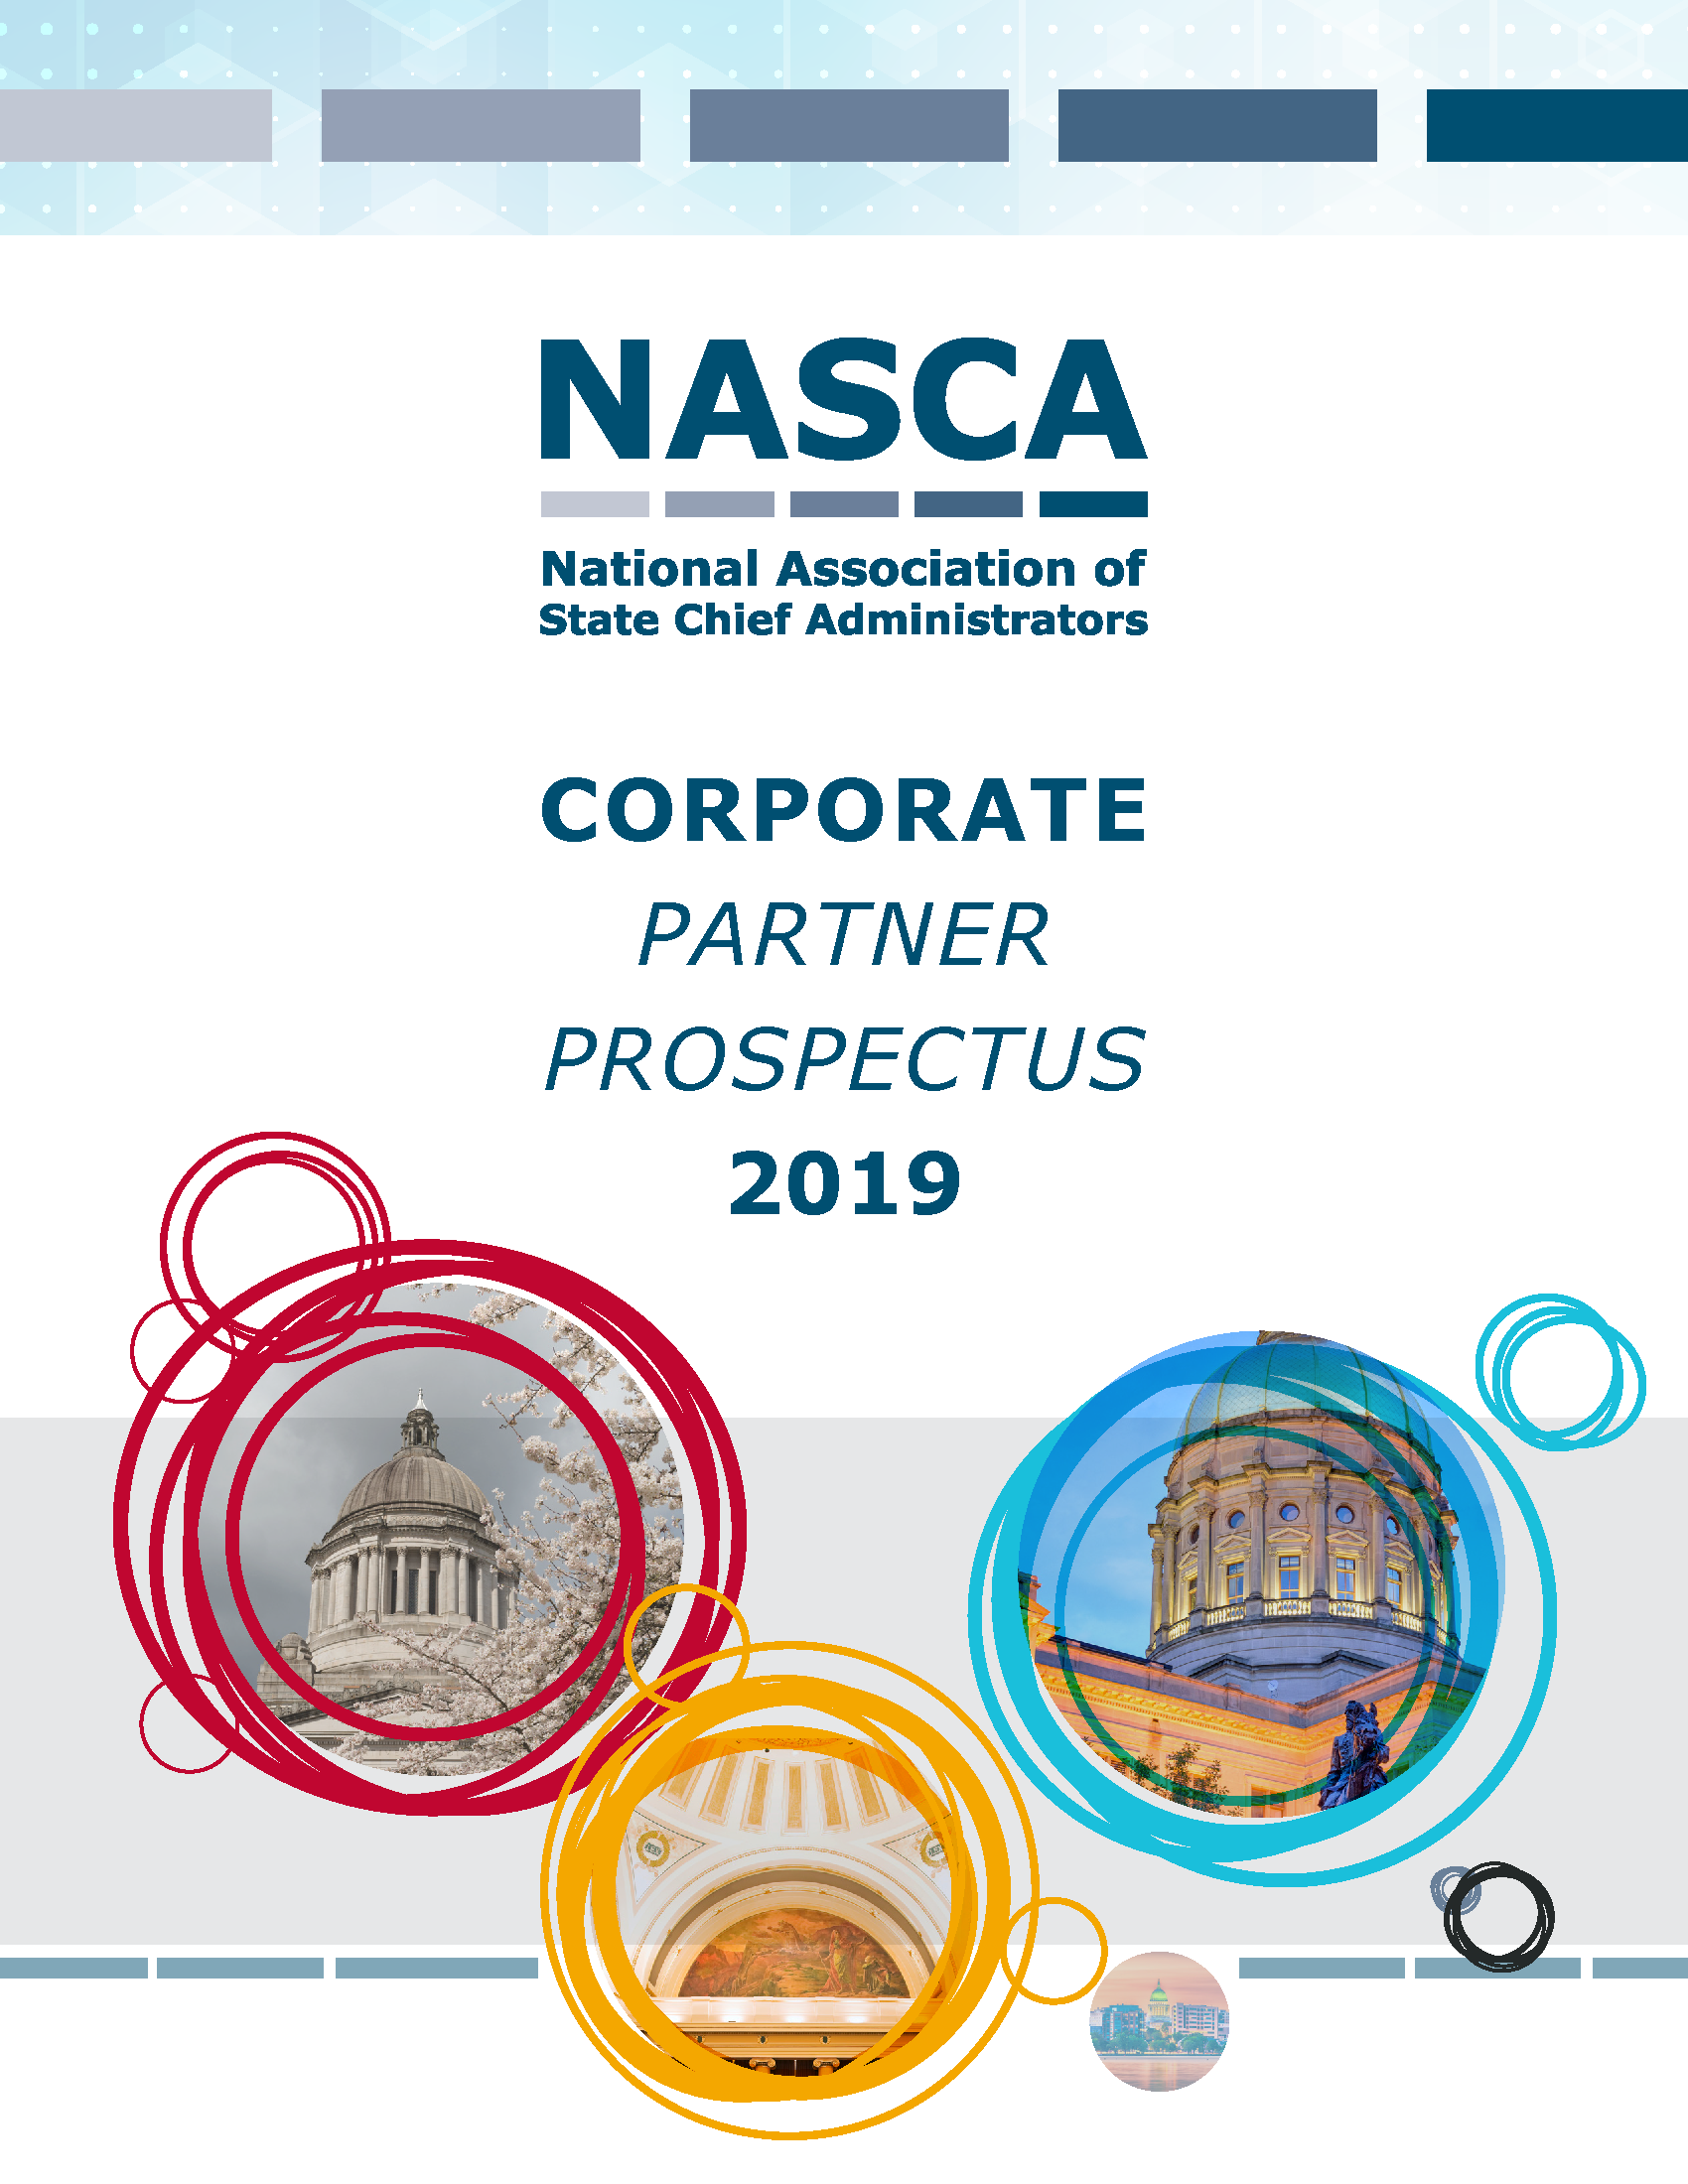 NASCA_CorporatePartnerProspectus18_Cover